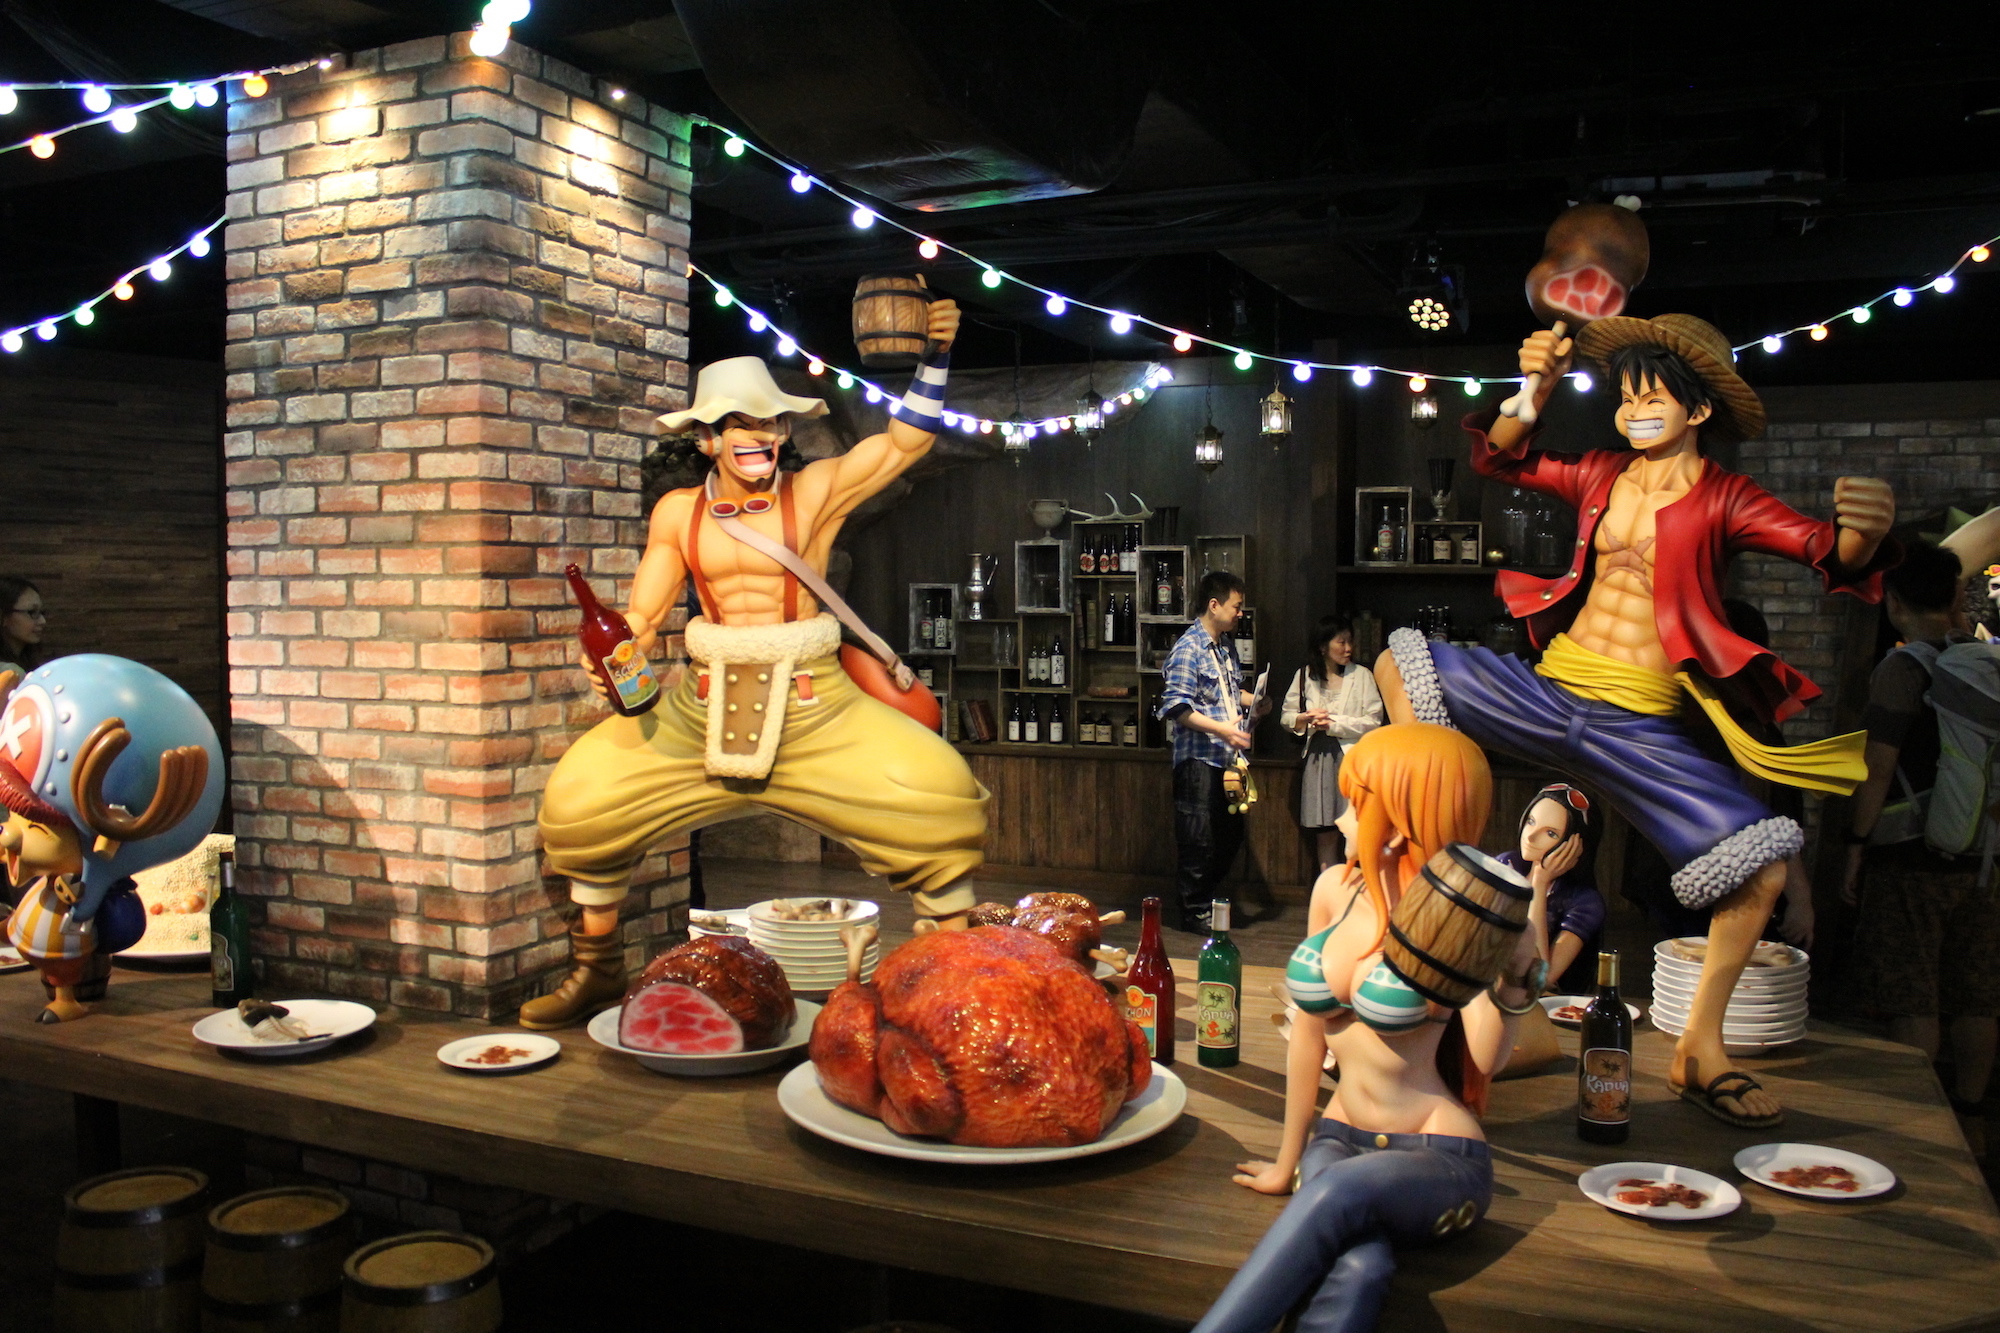 The OnePiece experience at Tokyo Tower